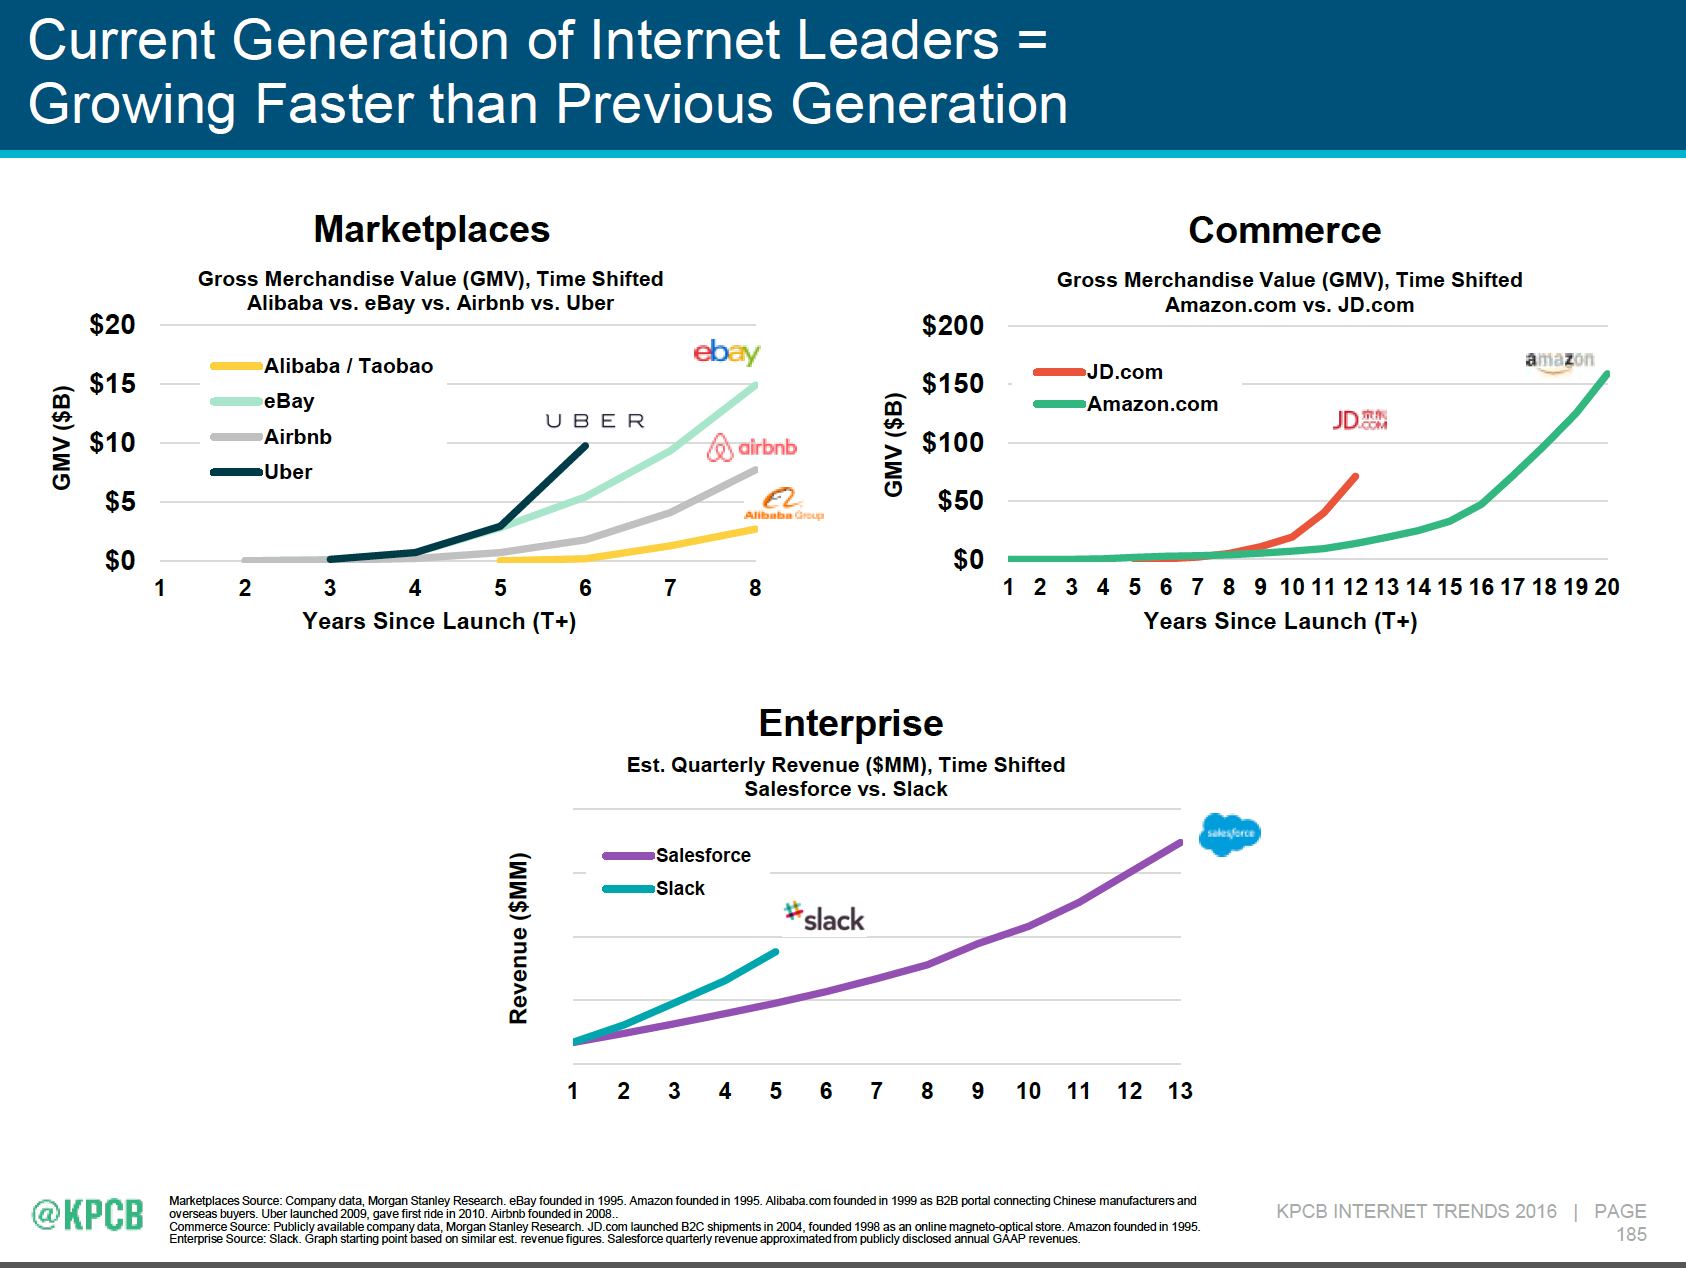 Mary Meeker's 2016 Internet Trends Report